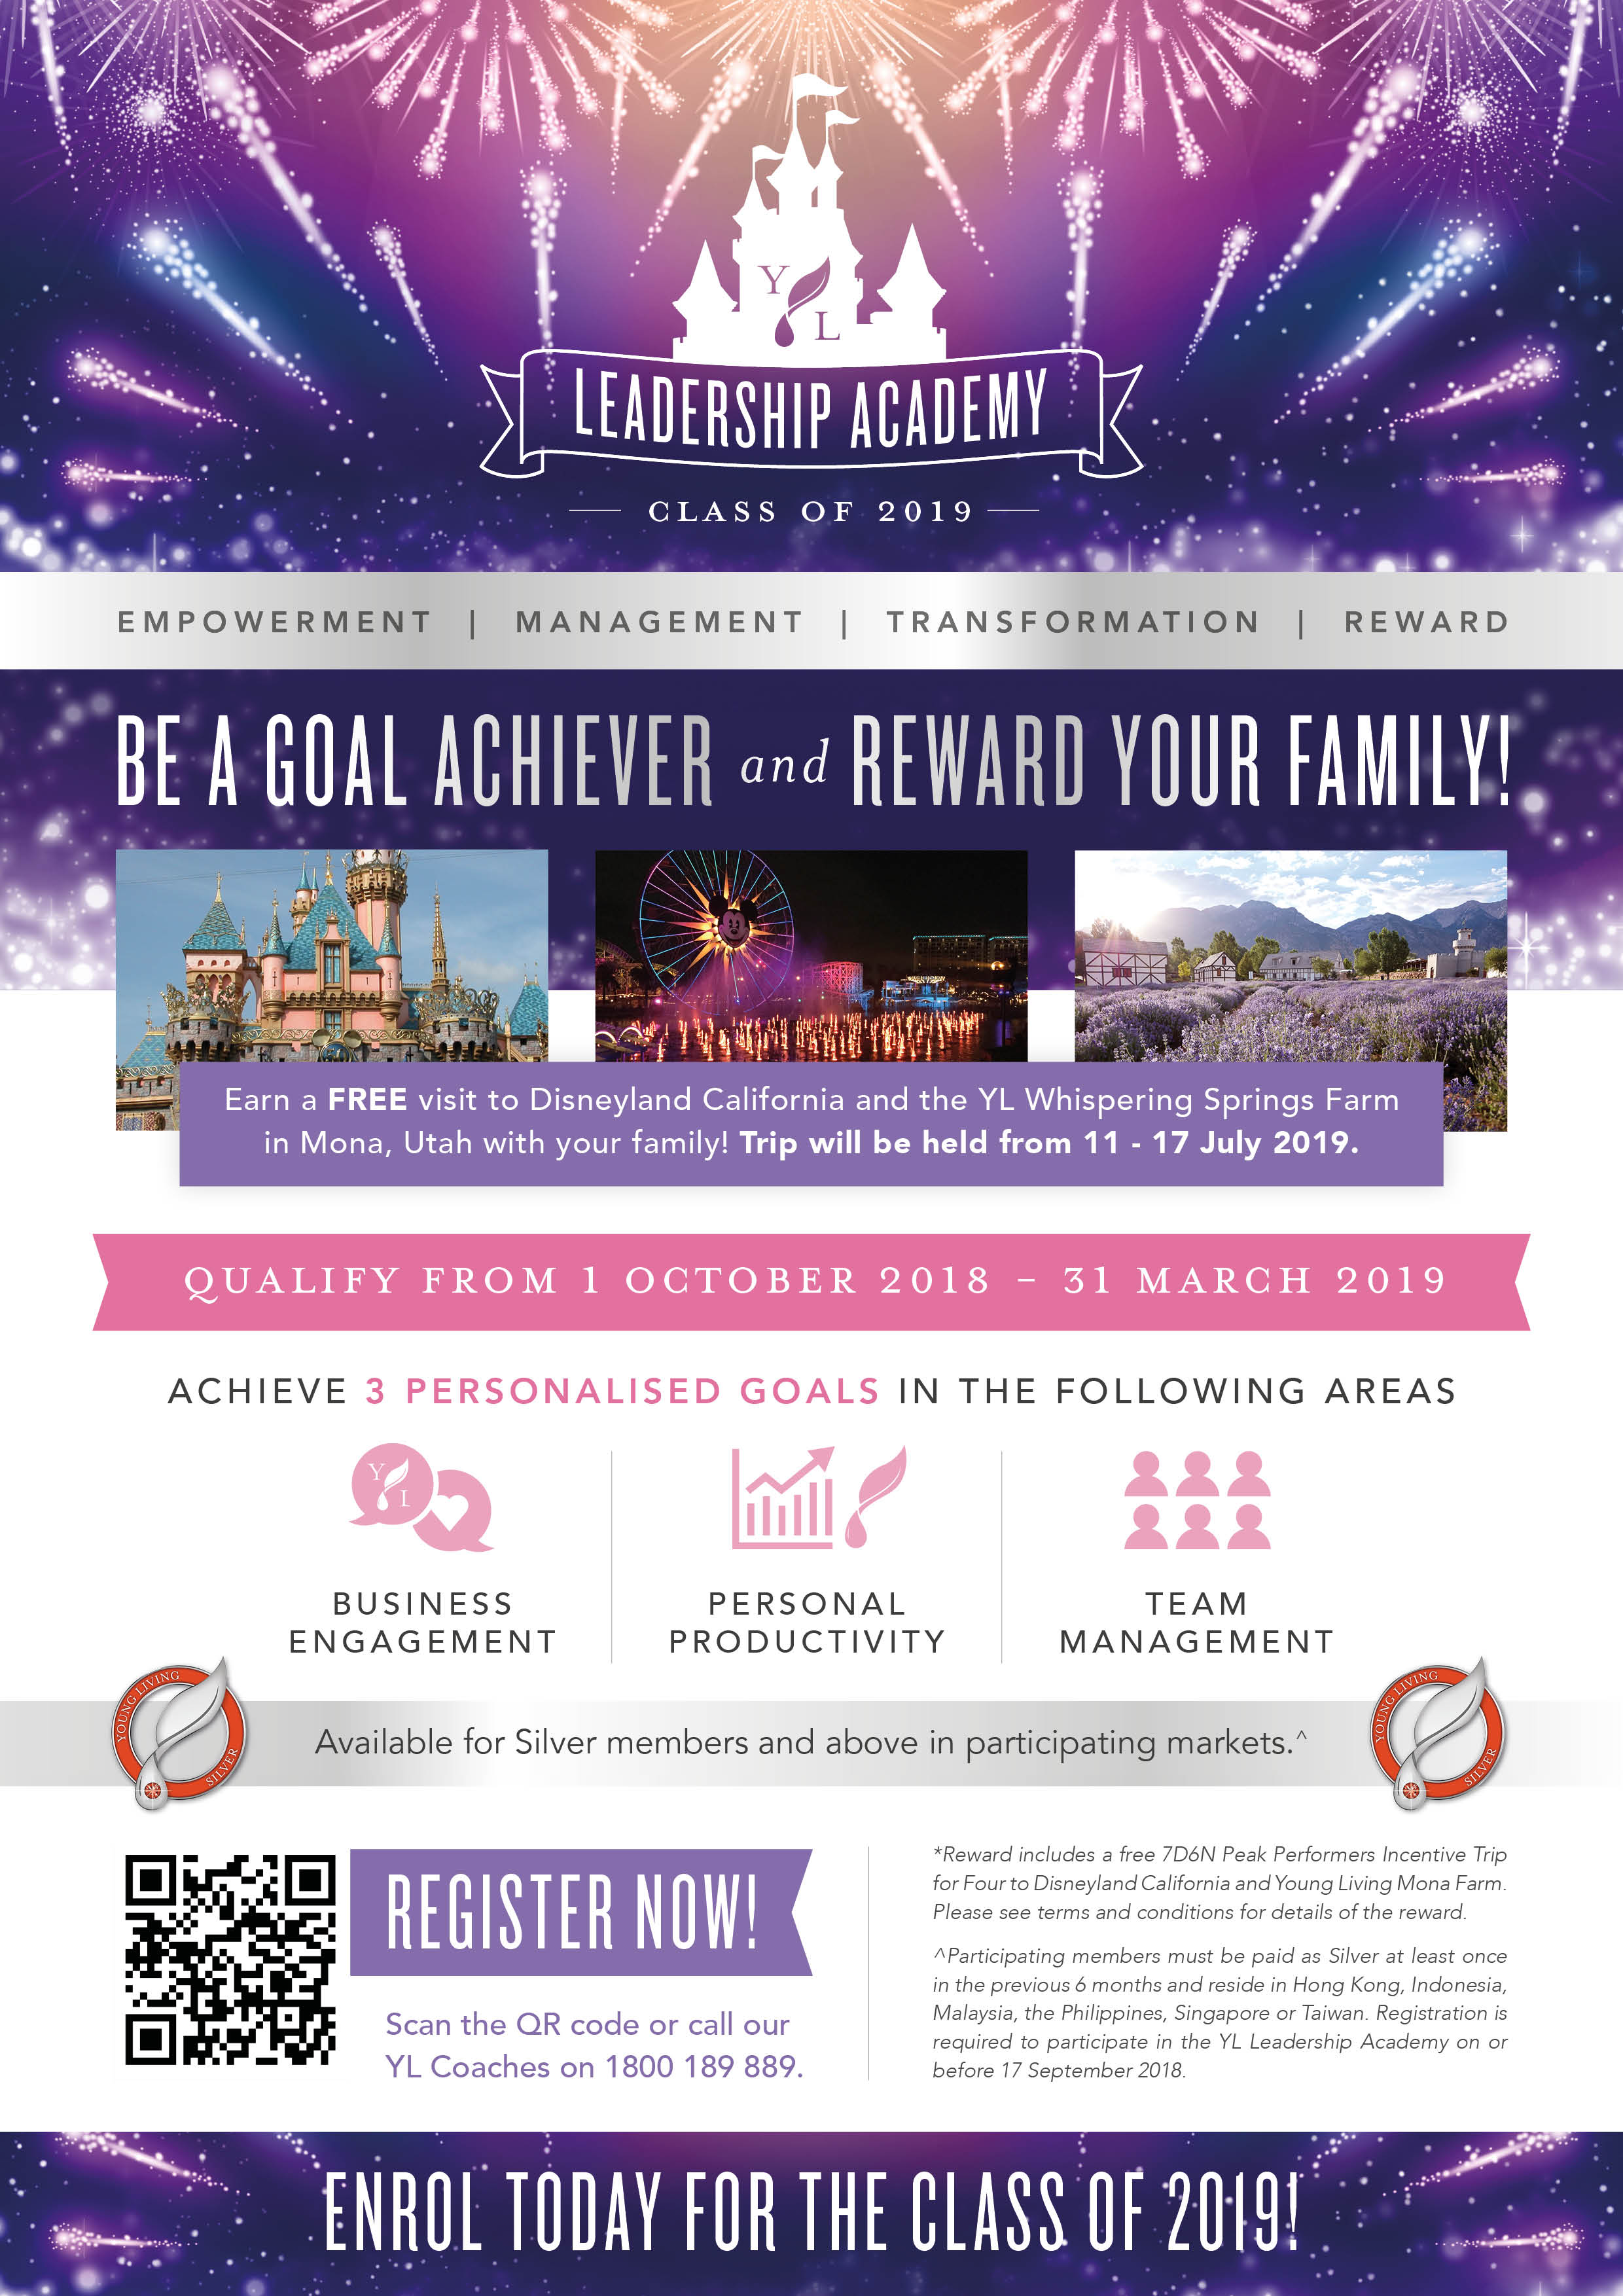 Yl Leadership Academy Class Of 2019 Young Living Essential Oils Disneyland Hong Kong  Adult 1 Day Pass Enroll In The And Bring Your Family On Peak Performers Incentive Trip Join Our Party